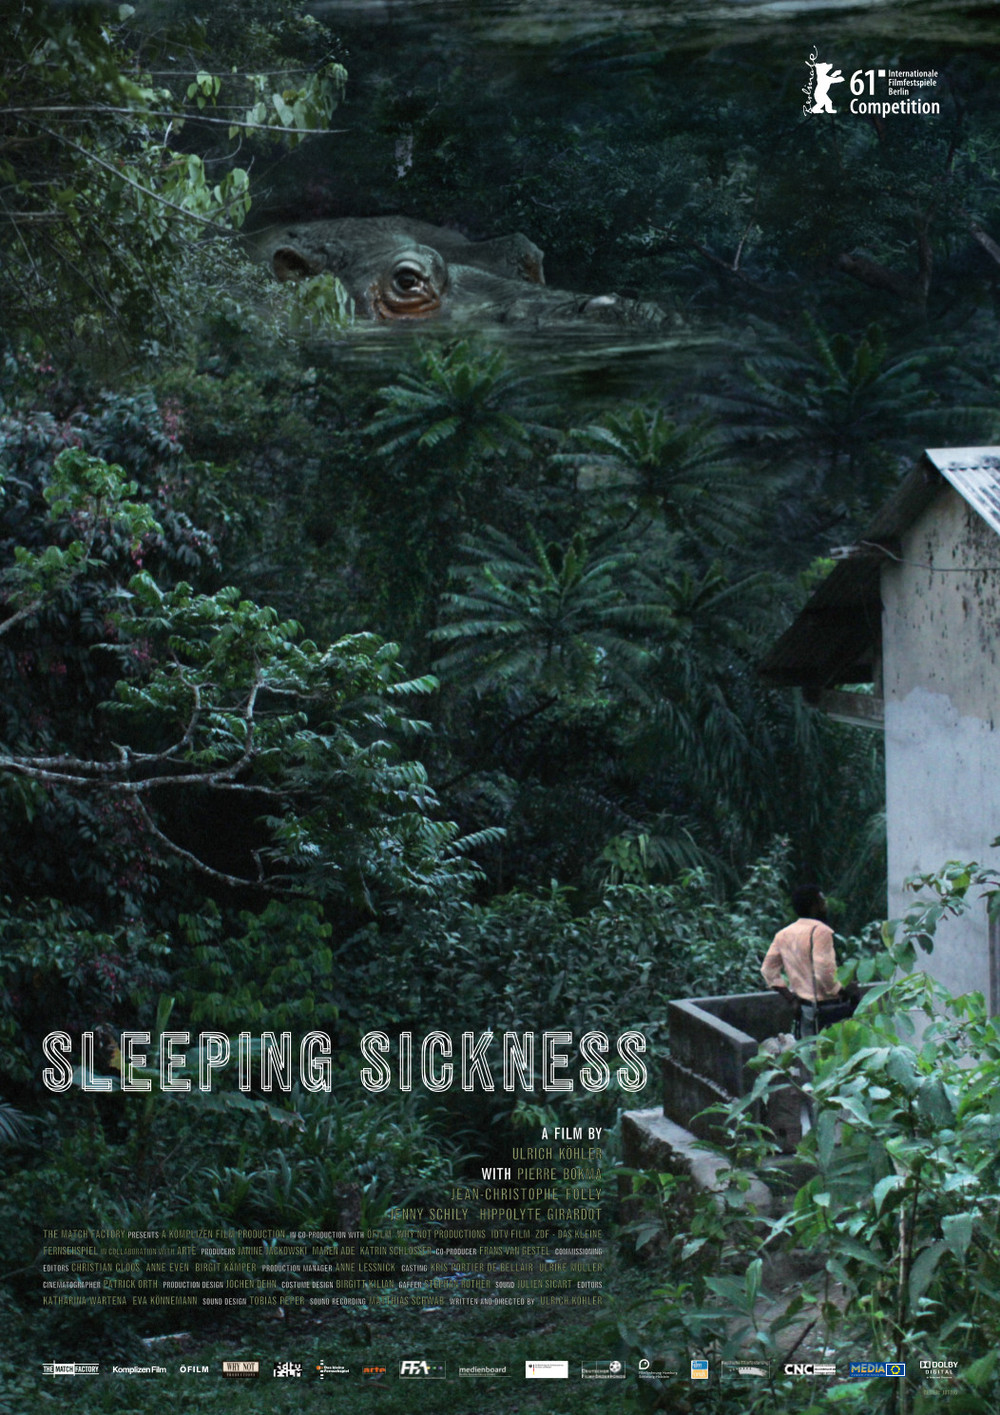 2011_Sleeping_Sickness_Komplizen_Film.jpg